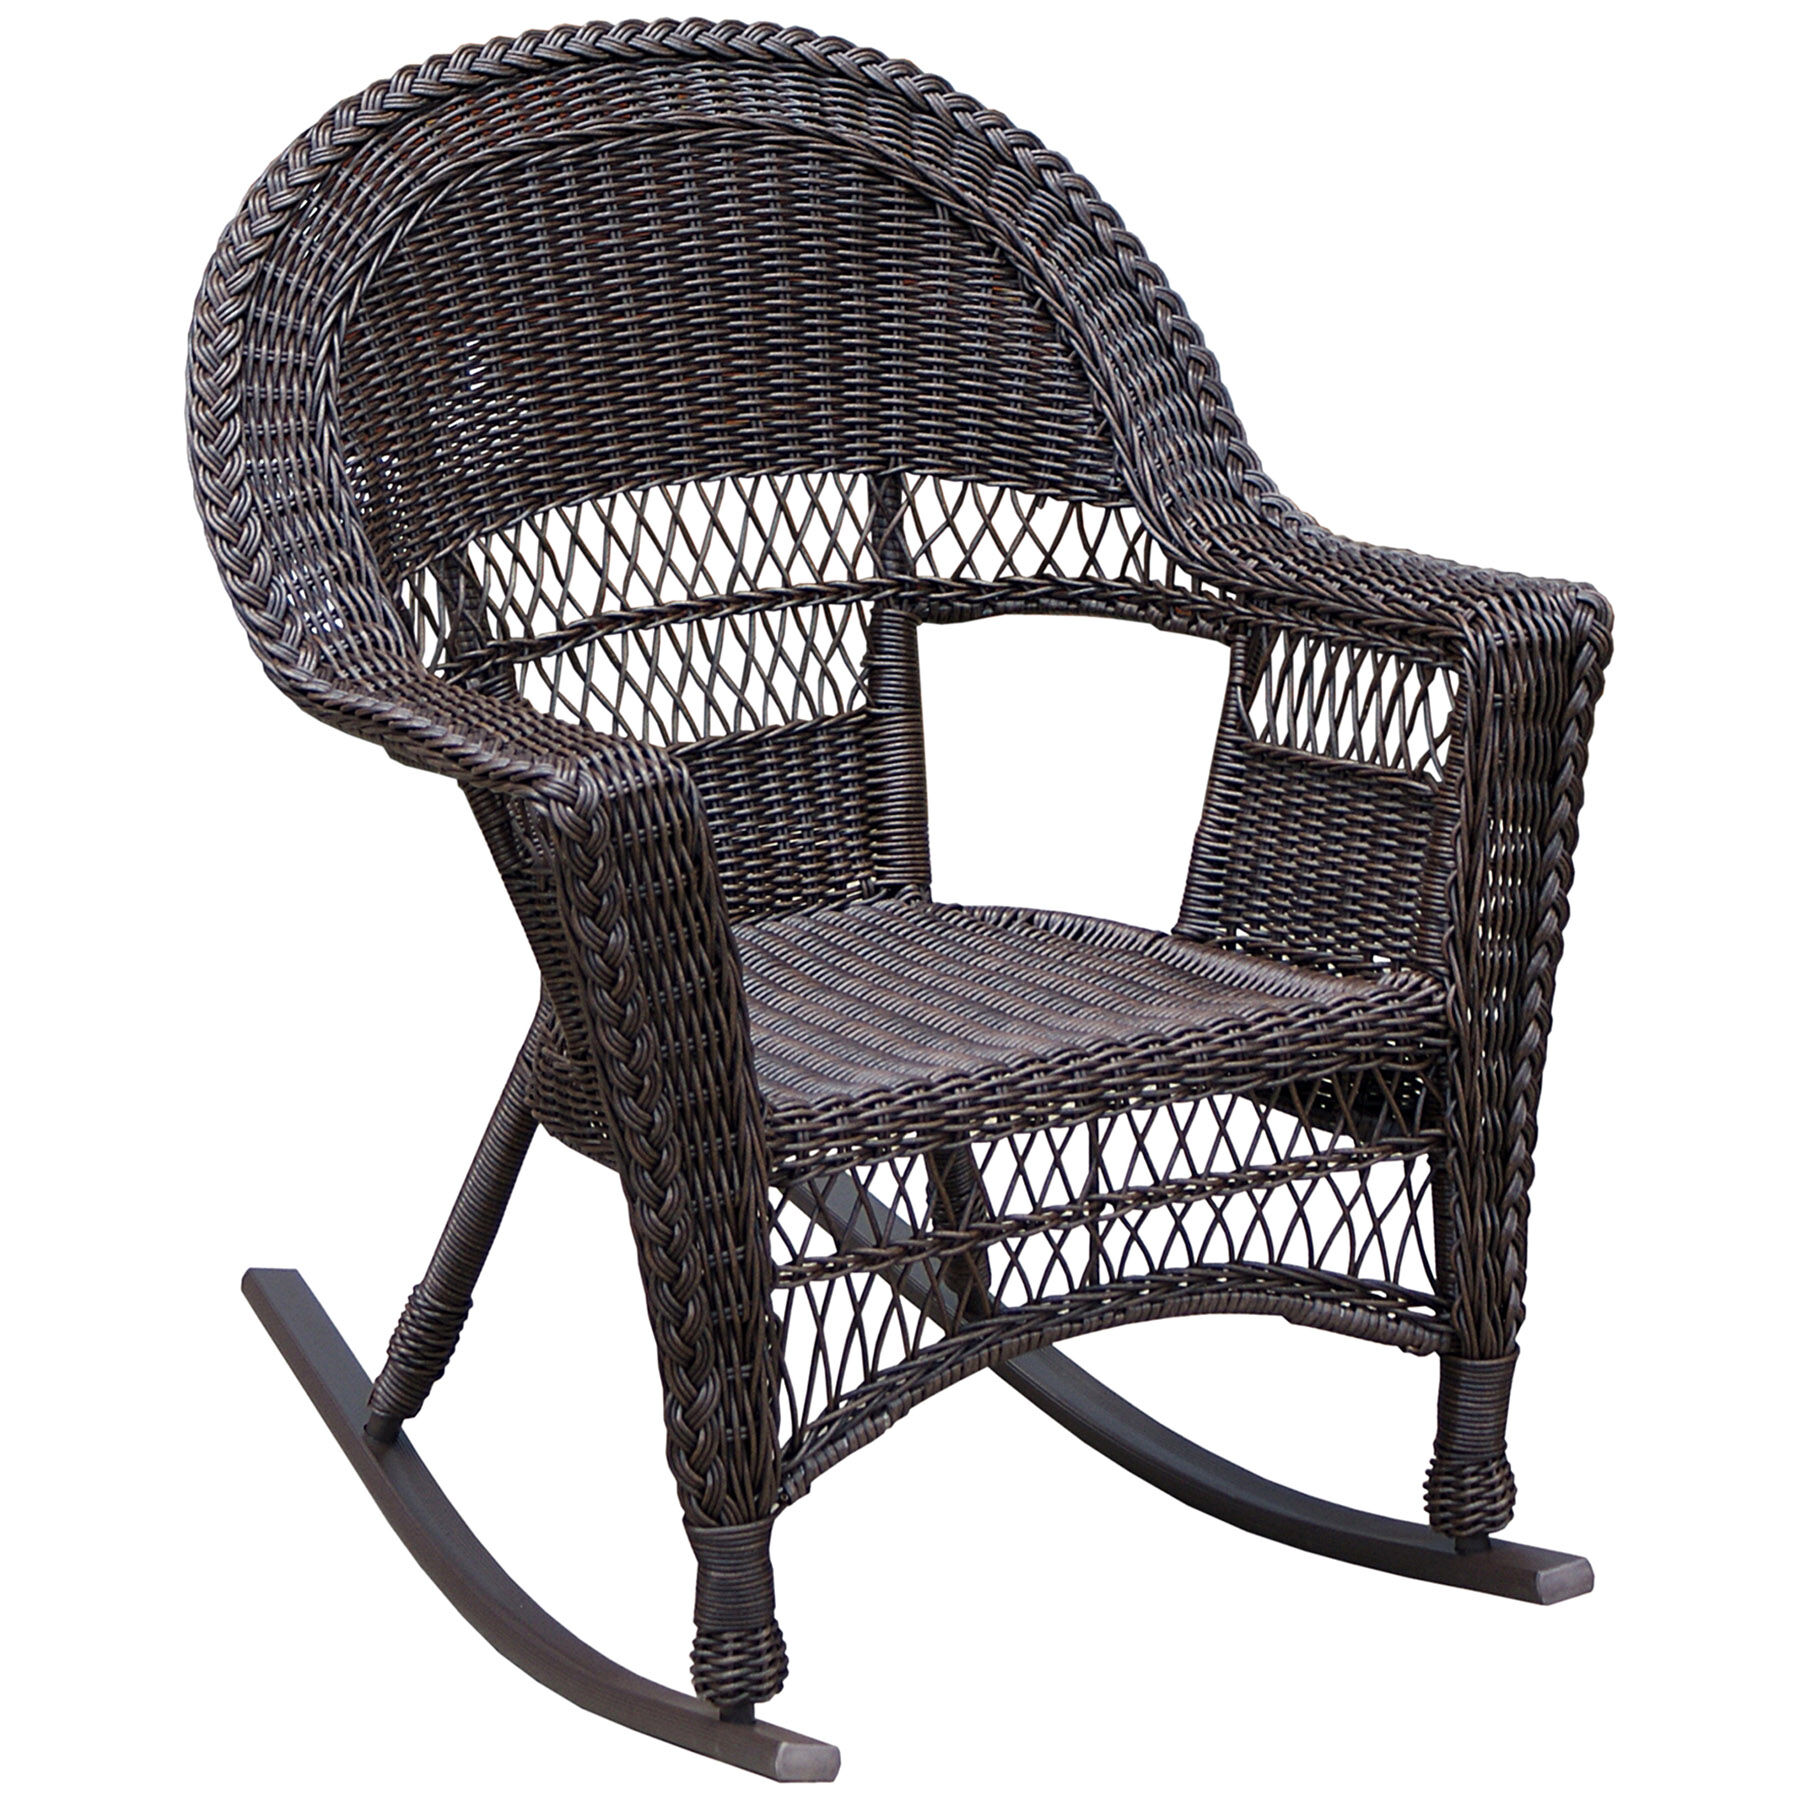 Wicker Rocking Chair Dark Brown  At Home